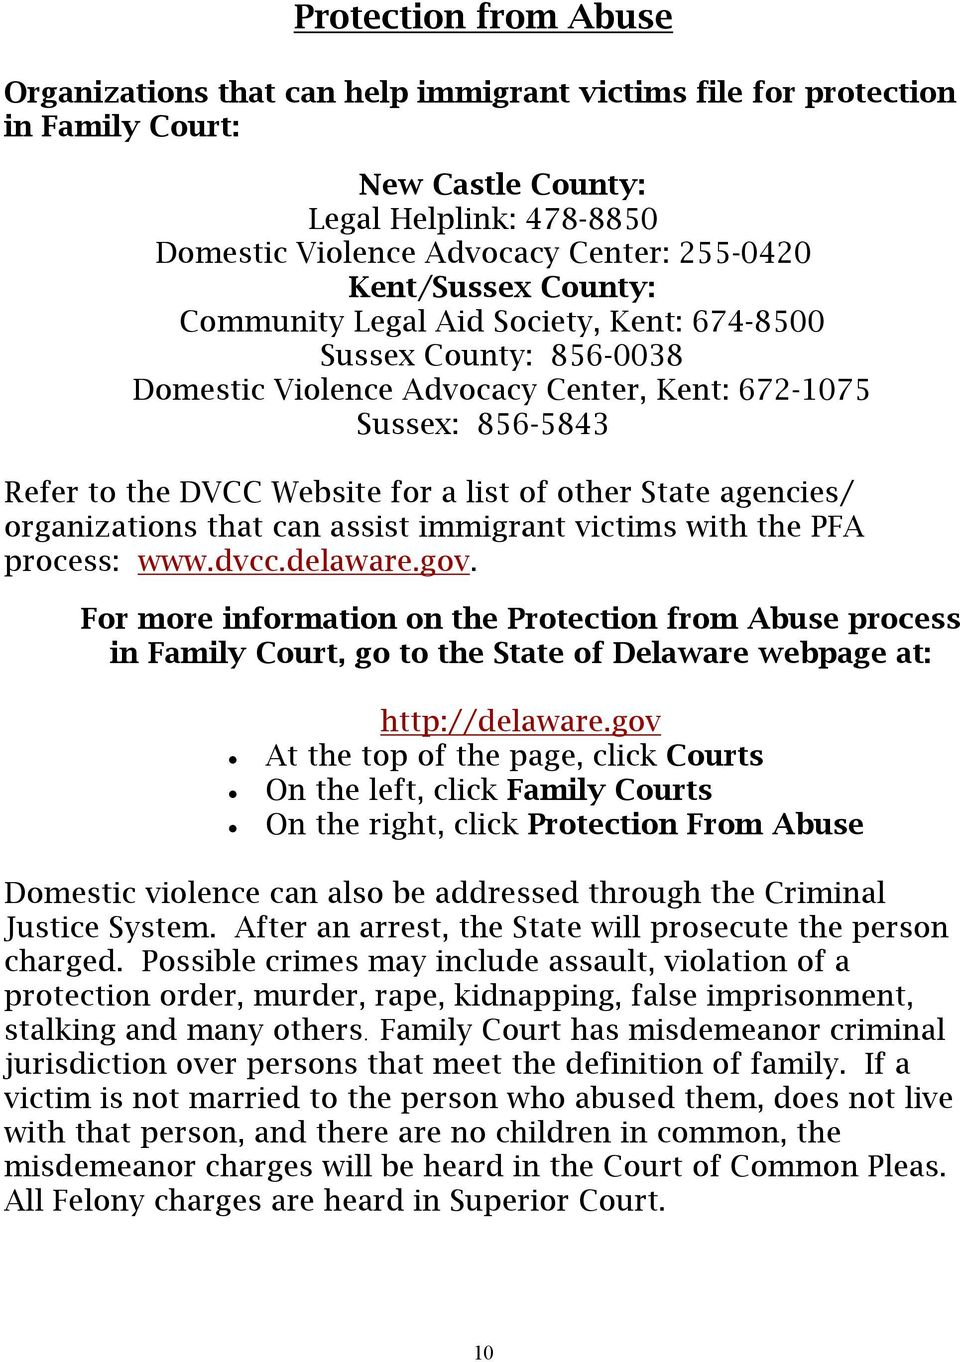 other State agencies/ organizations that can assist immigrant victims with the PFA process: www.dvcc.delaware.gov.